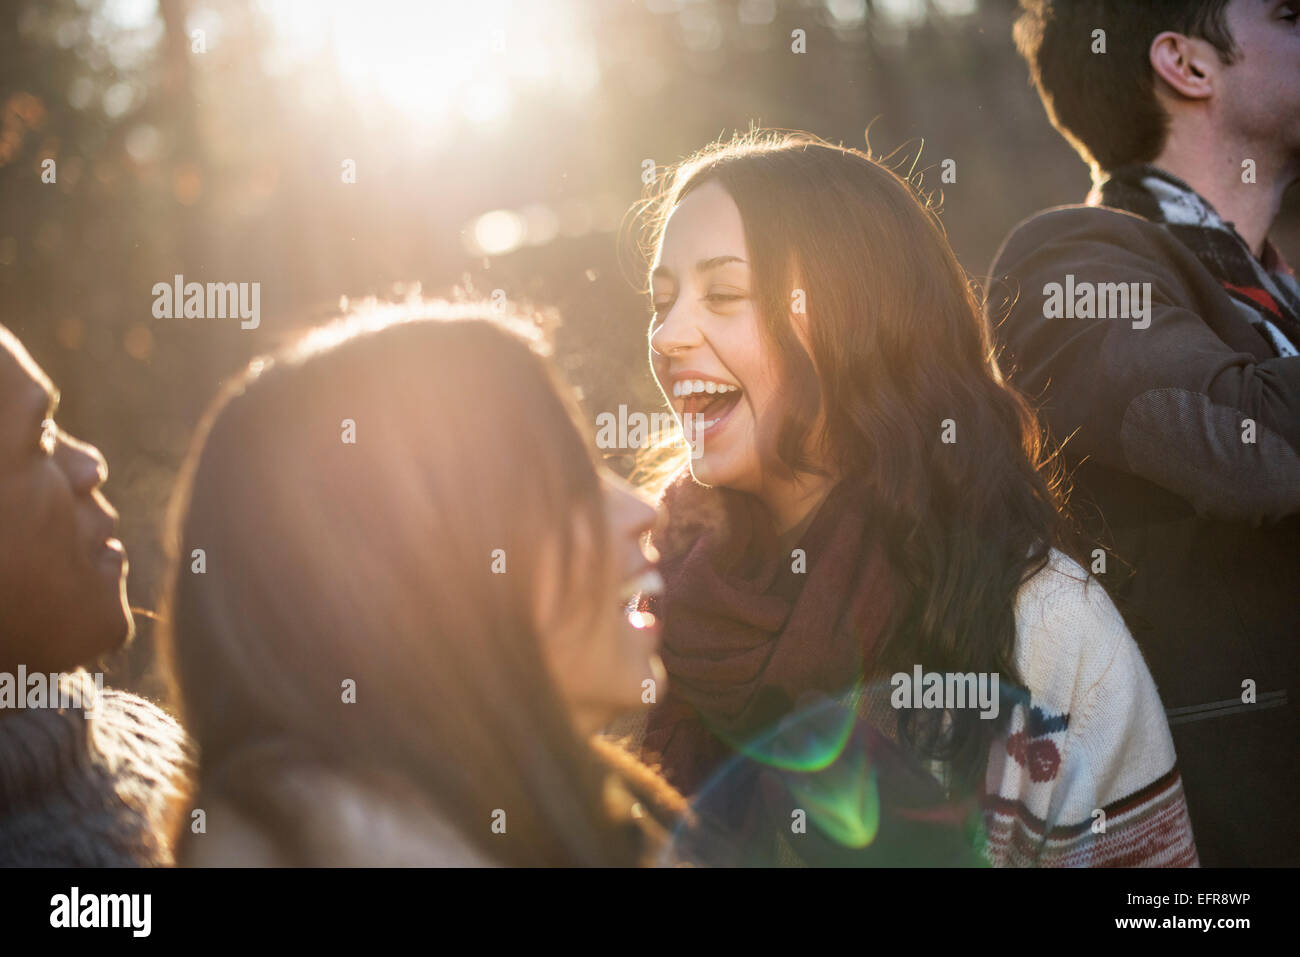 Smiling group of friends standing in a sunlit forest in autumn. - Stock Image